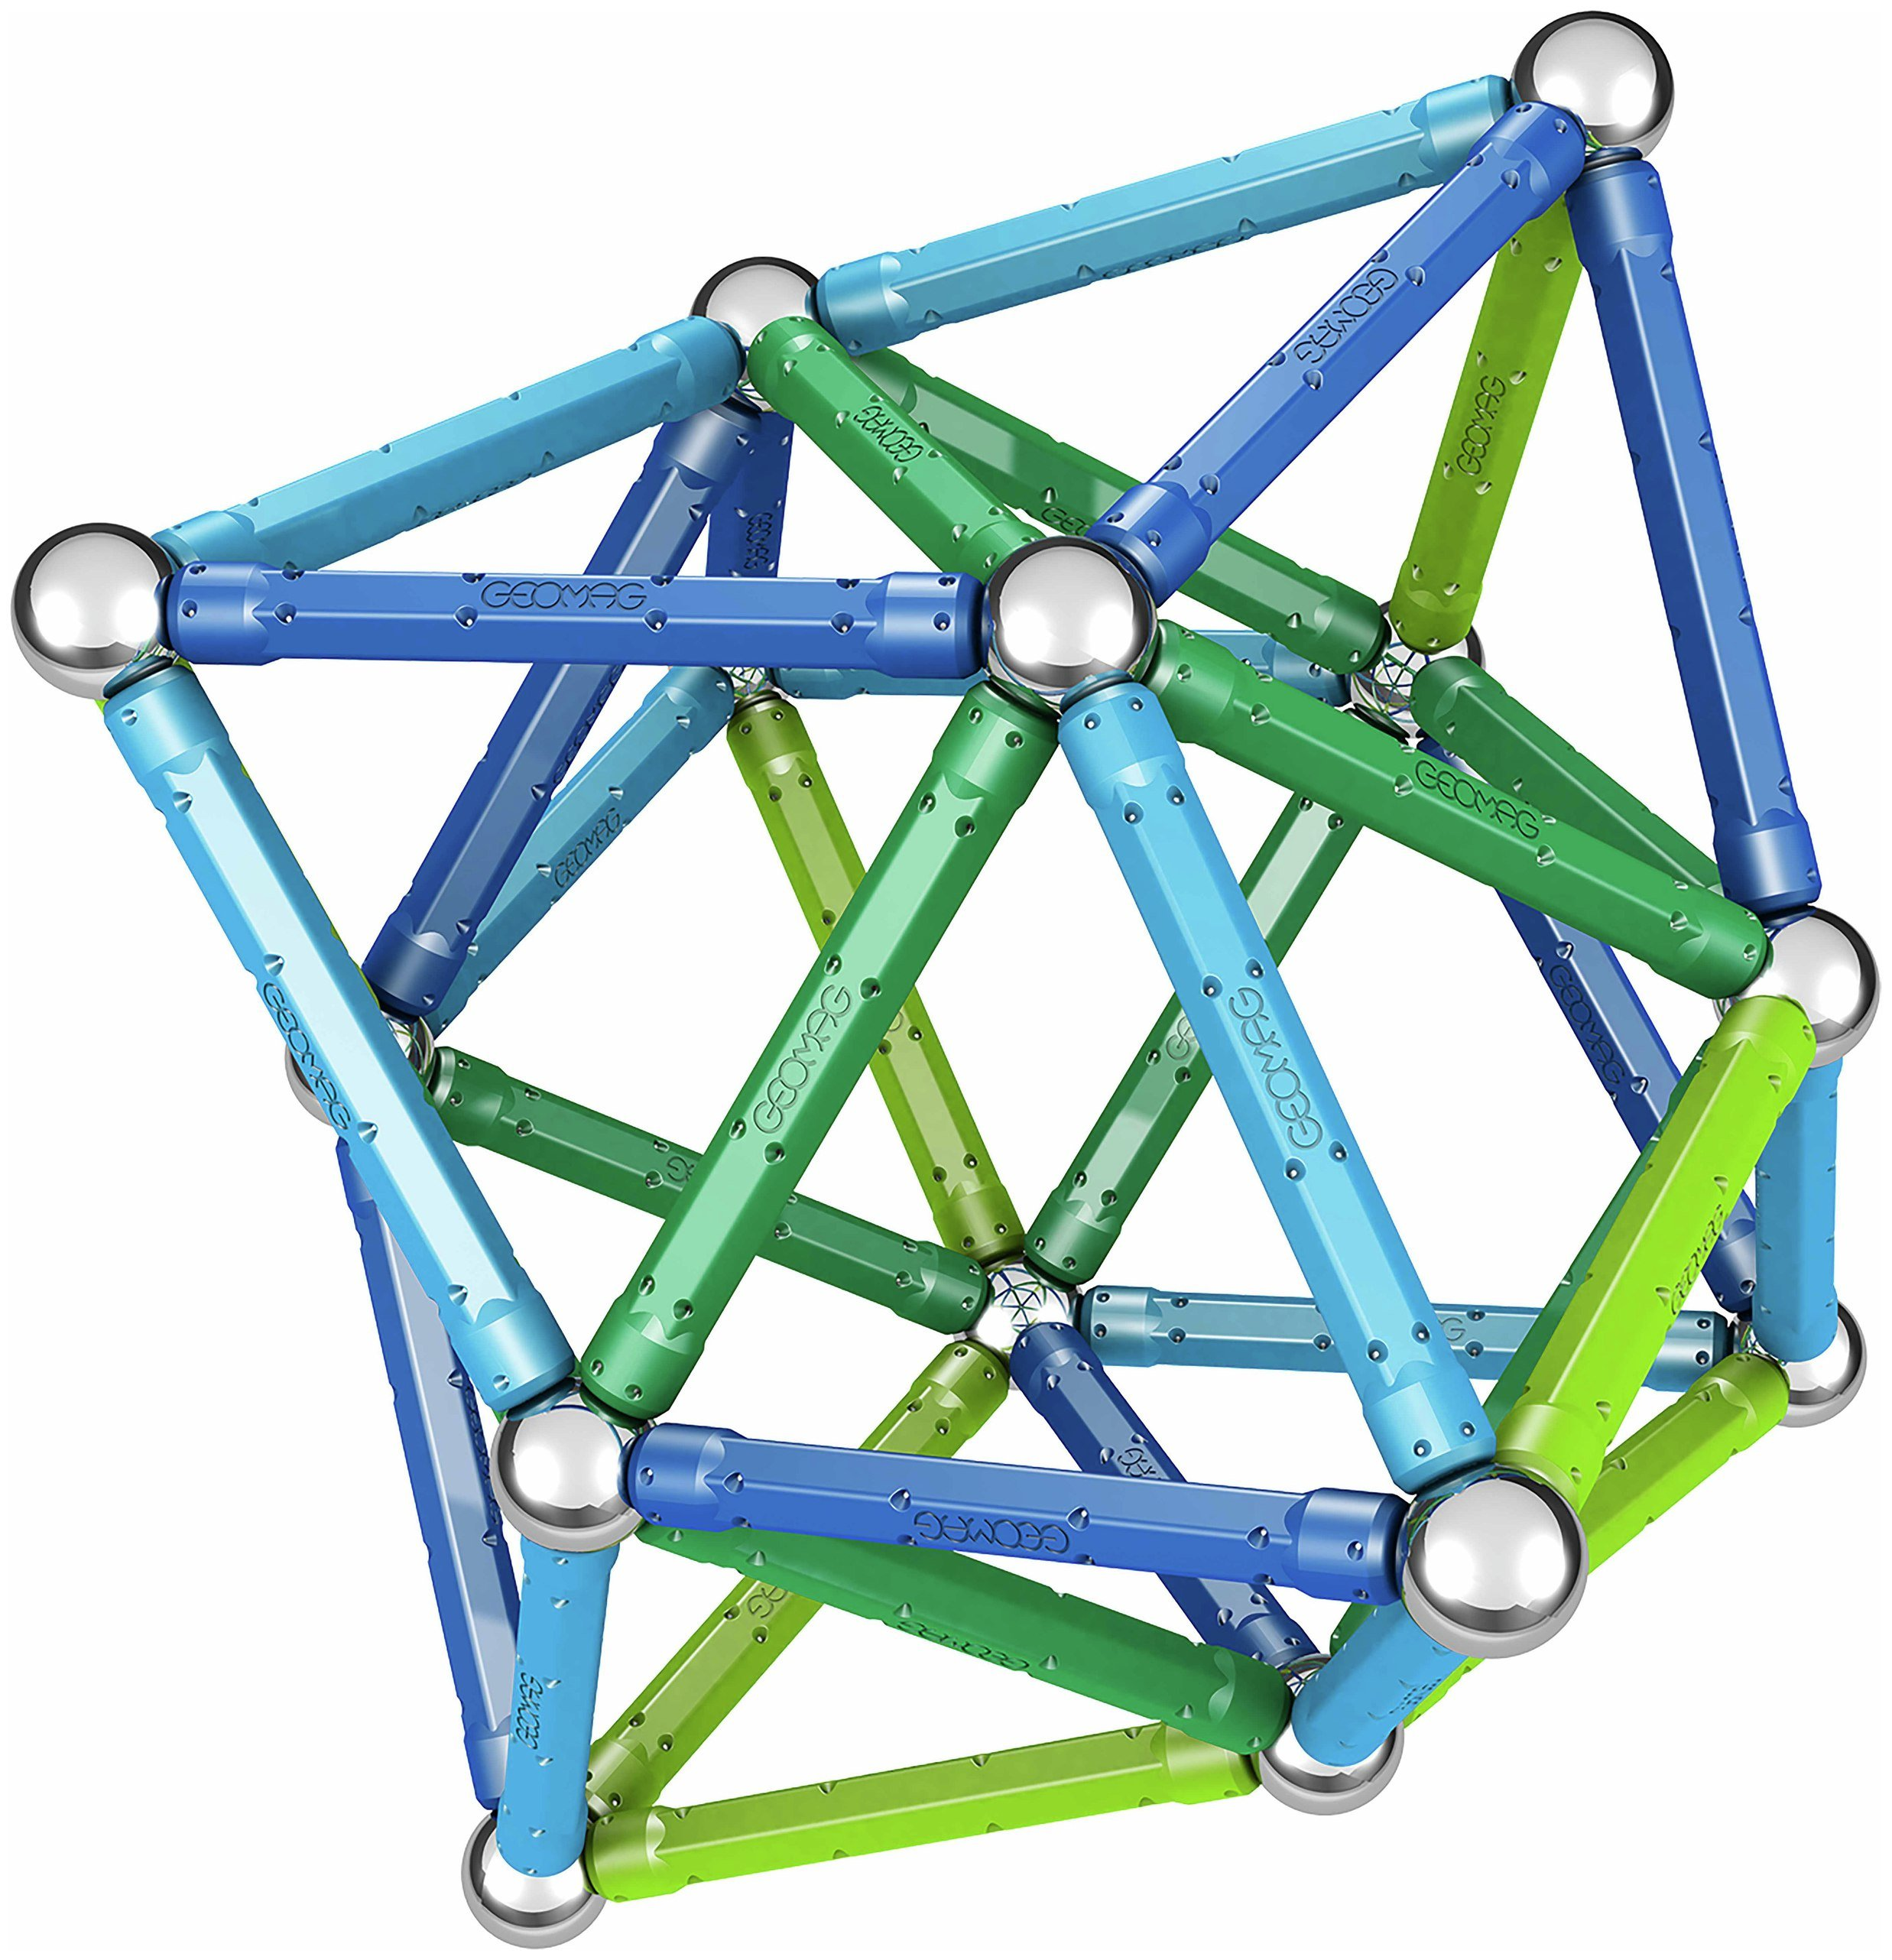 Image of Geomag Colour 91 Magnetic Construction System.